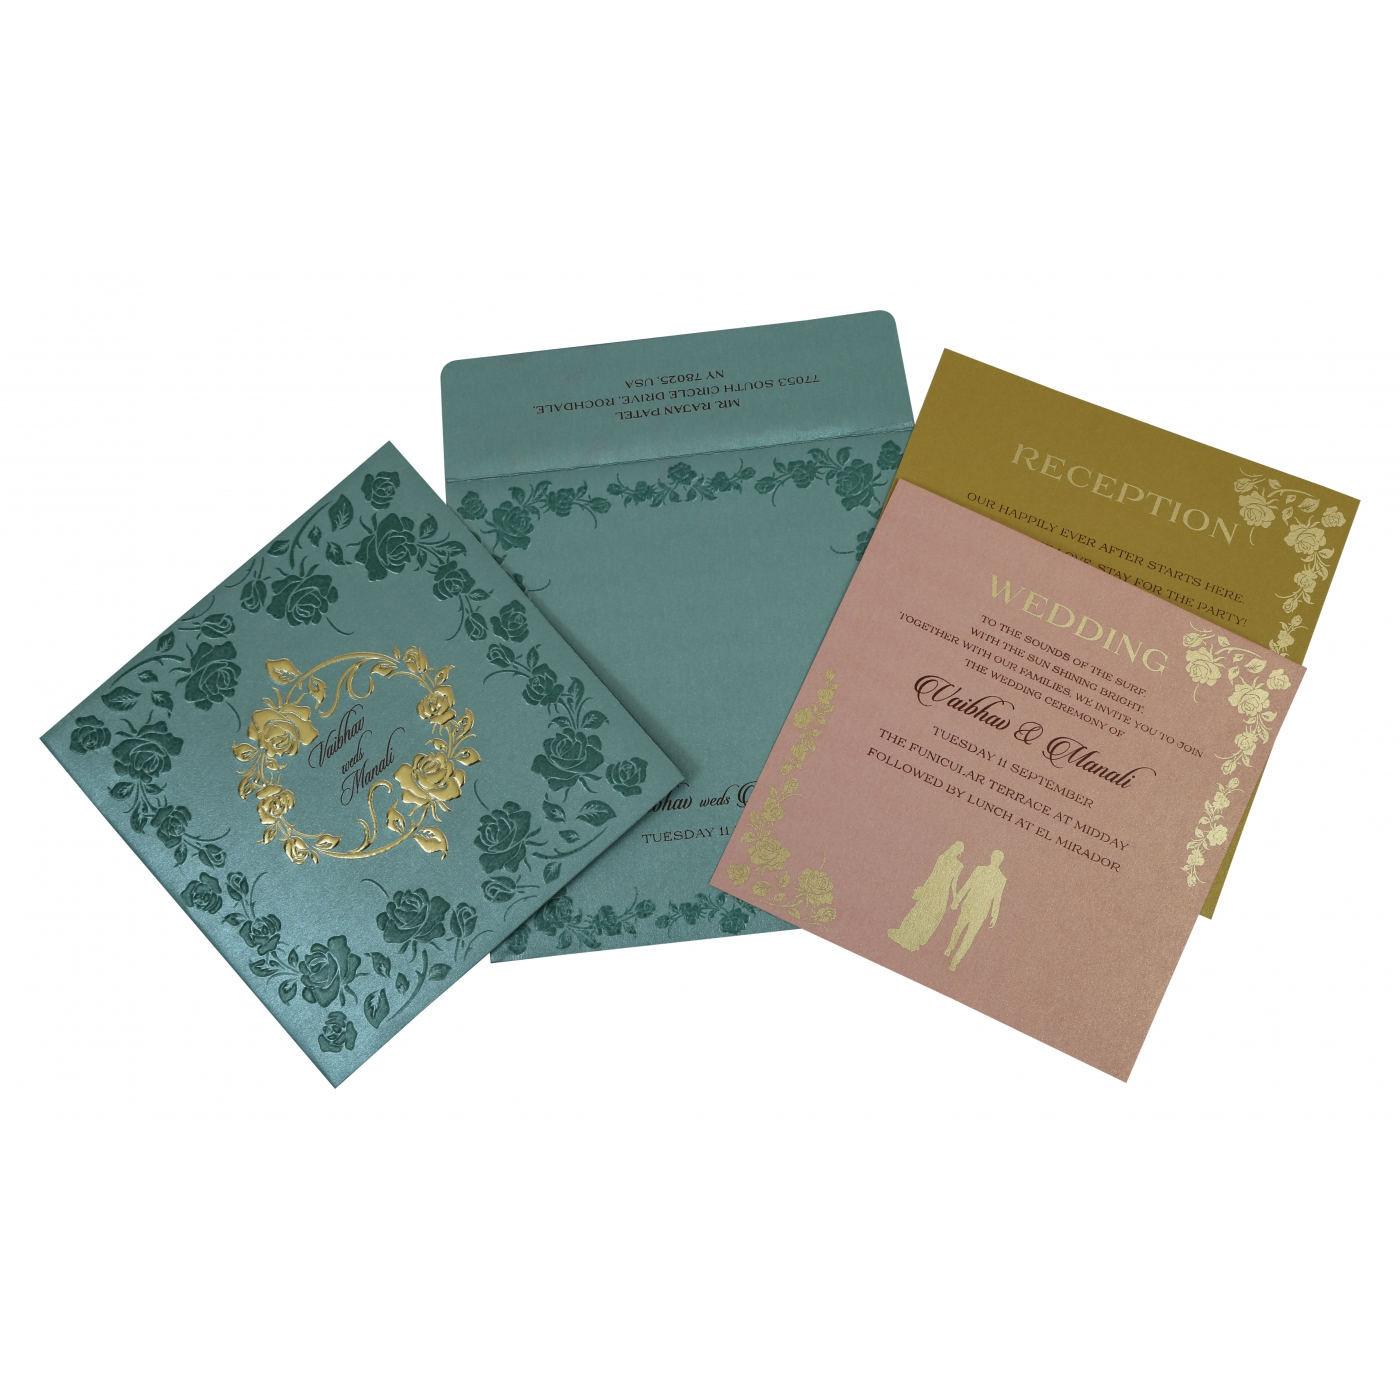 TOPAZ BLUE SHIMMERY FLORAL THEMED - FOIL STAMPED WEDDING INVITATION : D-1794 - 123WeddingCards